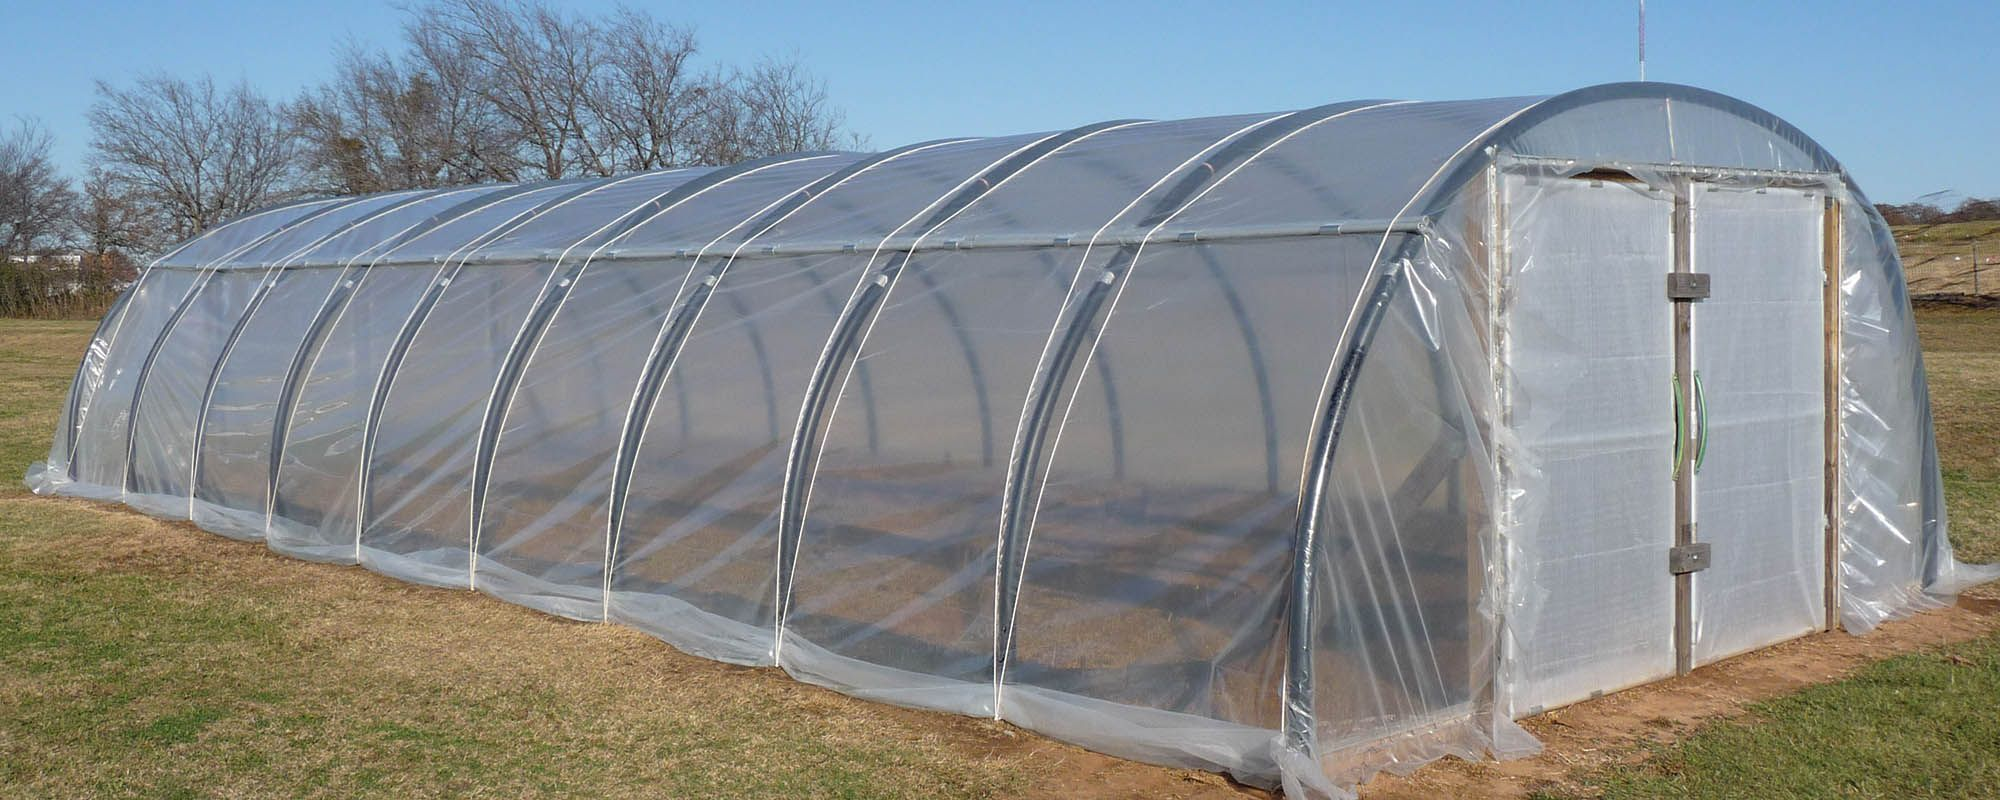 how to build a hoop greenhouse cheap